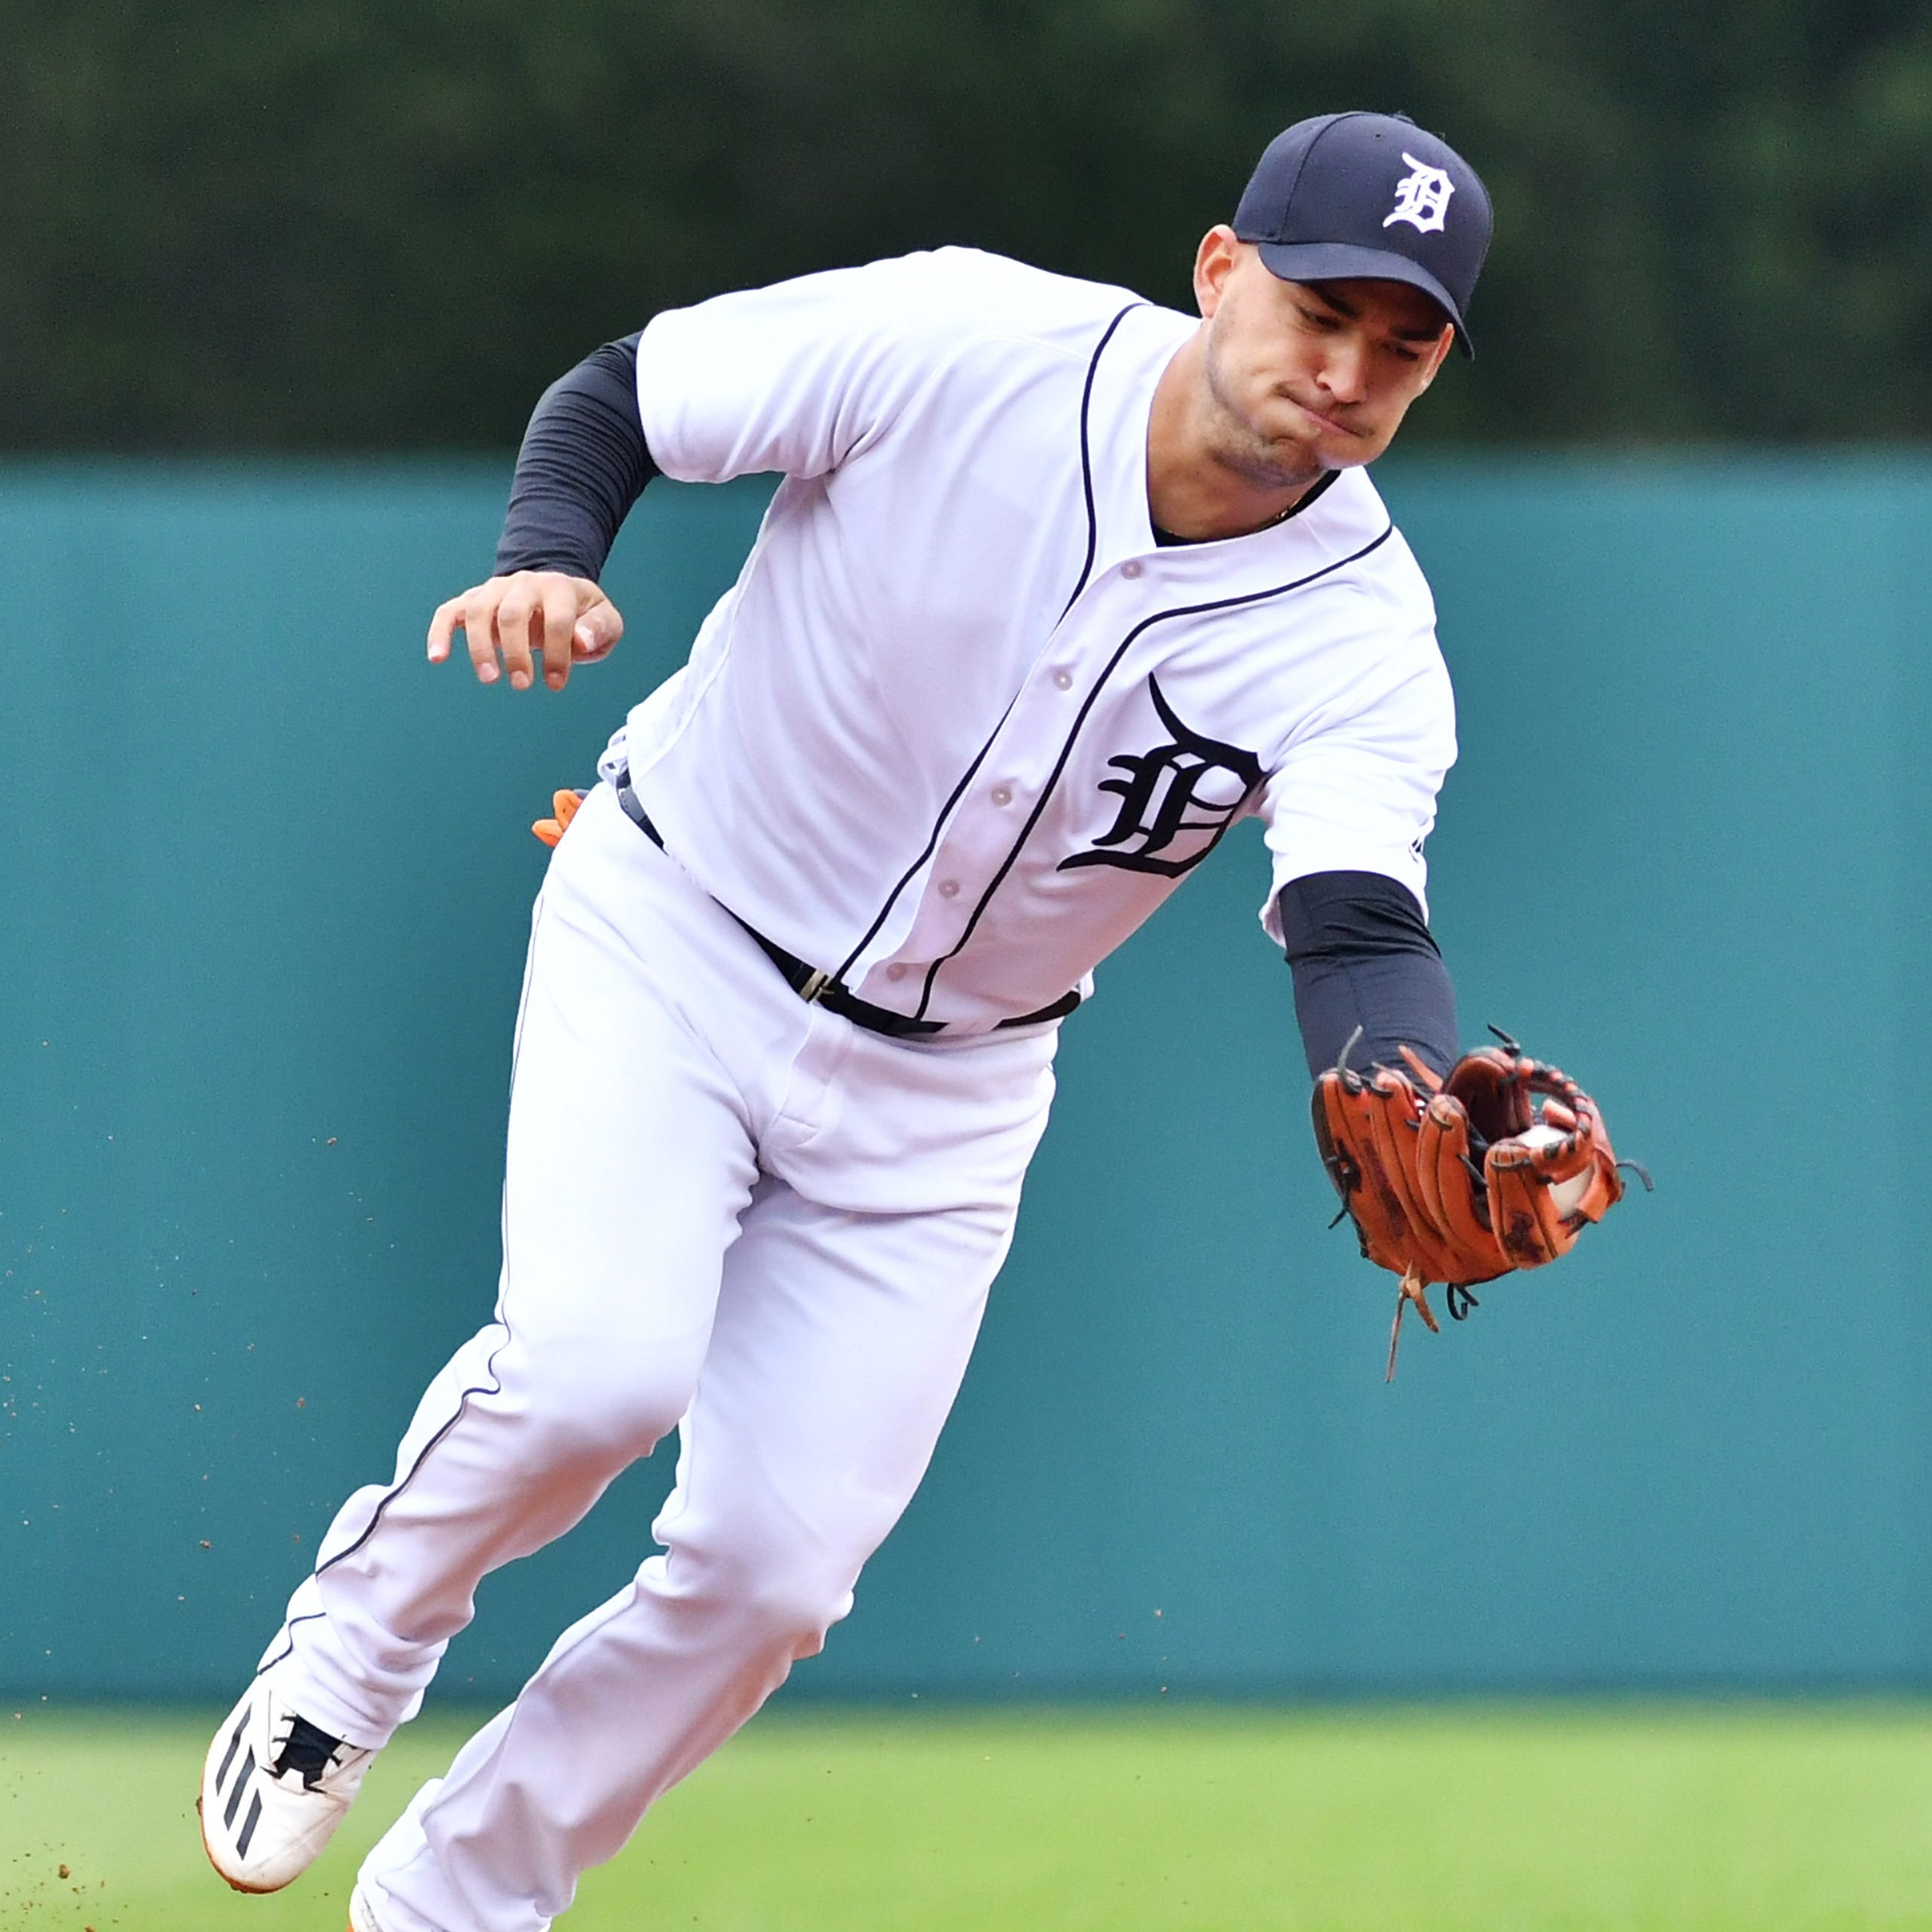 Former Tigers SS Jose Iglesias signs minor league contract with Reds